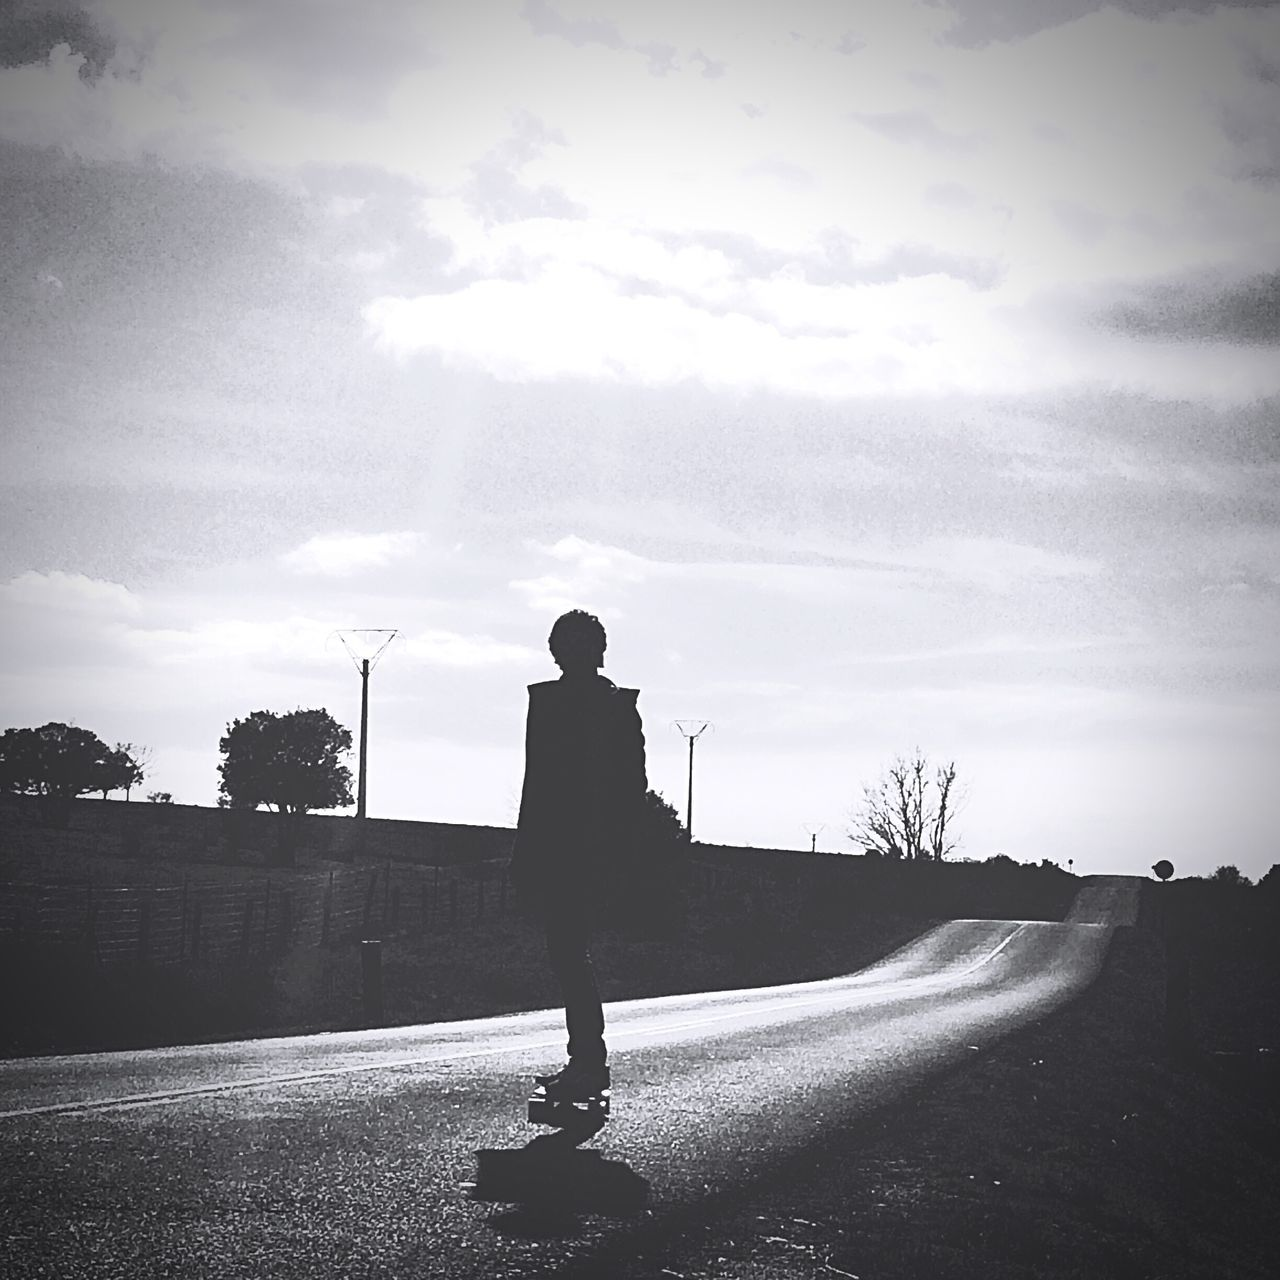 skating to home Blackandwhite BYOPaper! Full Length High Contrast Loneliness Long Way Home Longboard Longboarding One Person Outdoors Road Roadtrip Silhouette Skateboarding The Great Outdoors - 2017 EyeEm Awards The Portraitist - 2017 EyeEm Awards The Street Photographer - 2017 EyeEm Awards IPhoneography IPhone Shoot